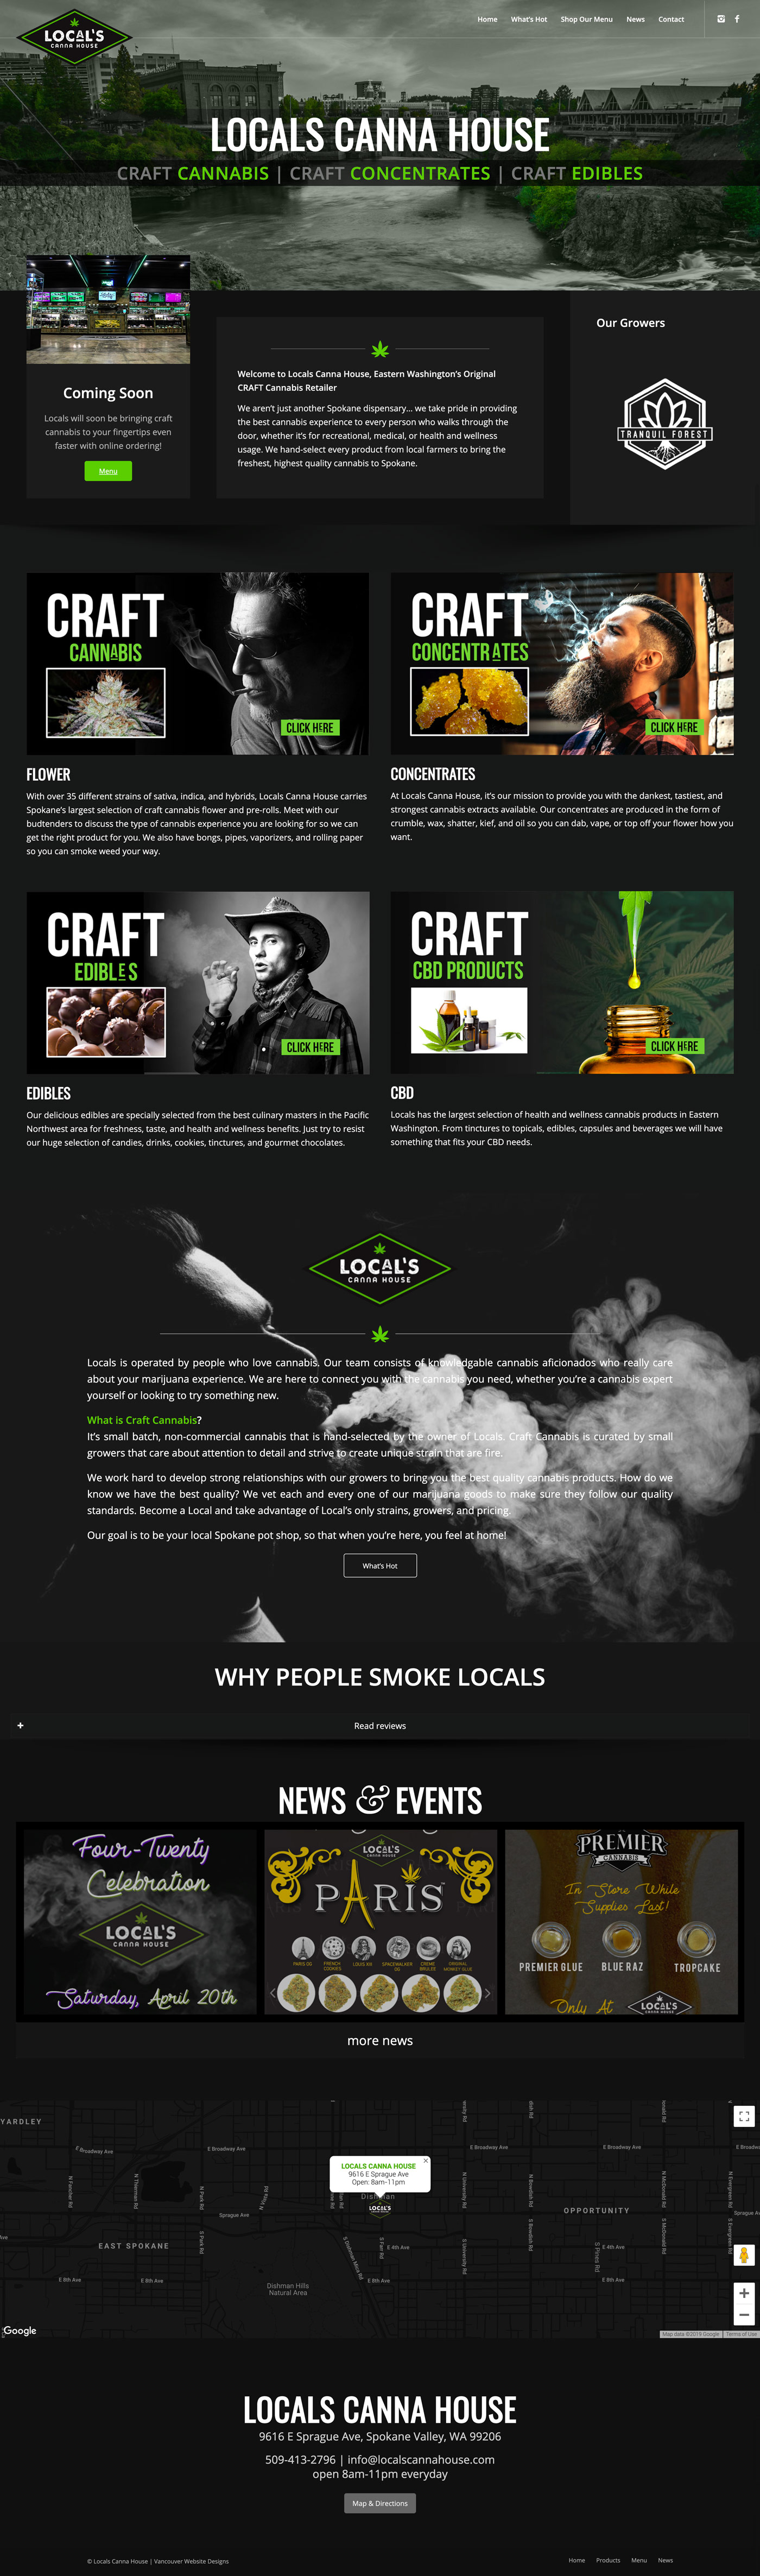 marijuana-dispensary-web-design-1400